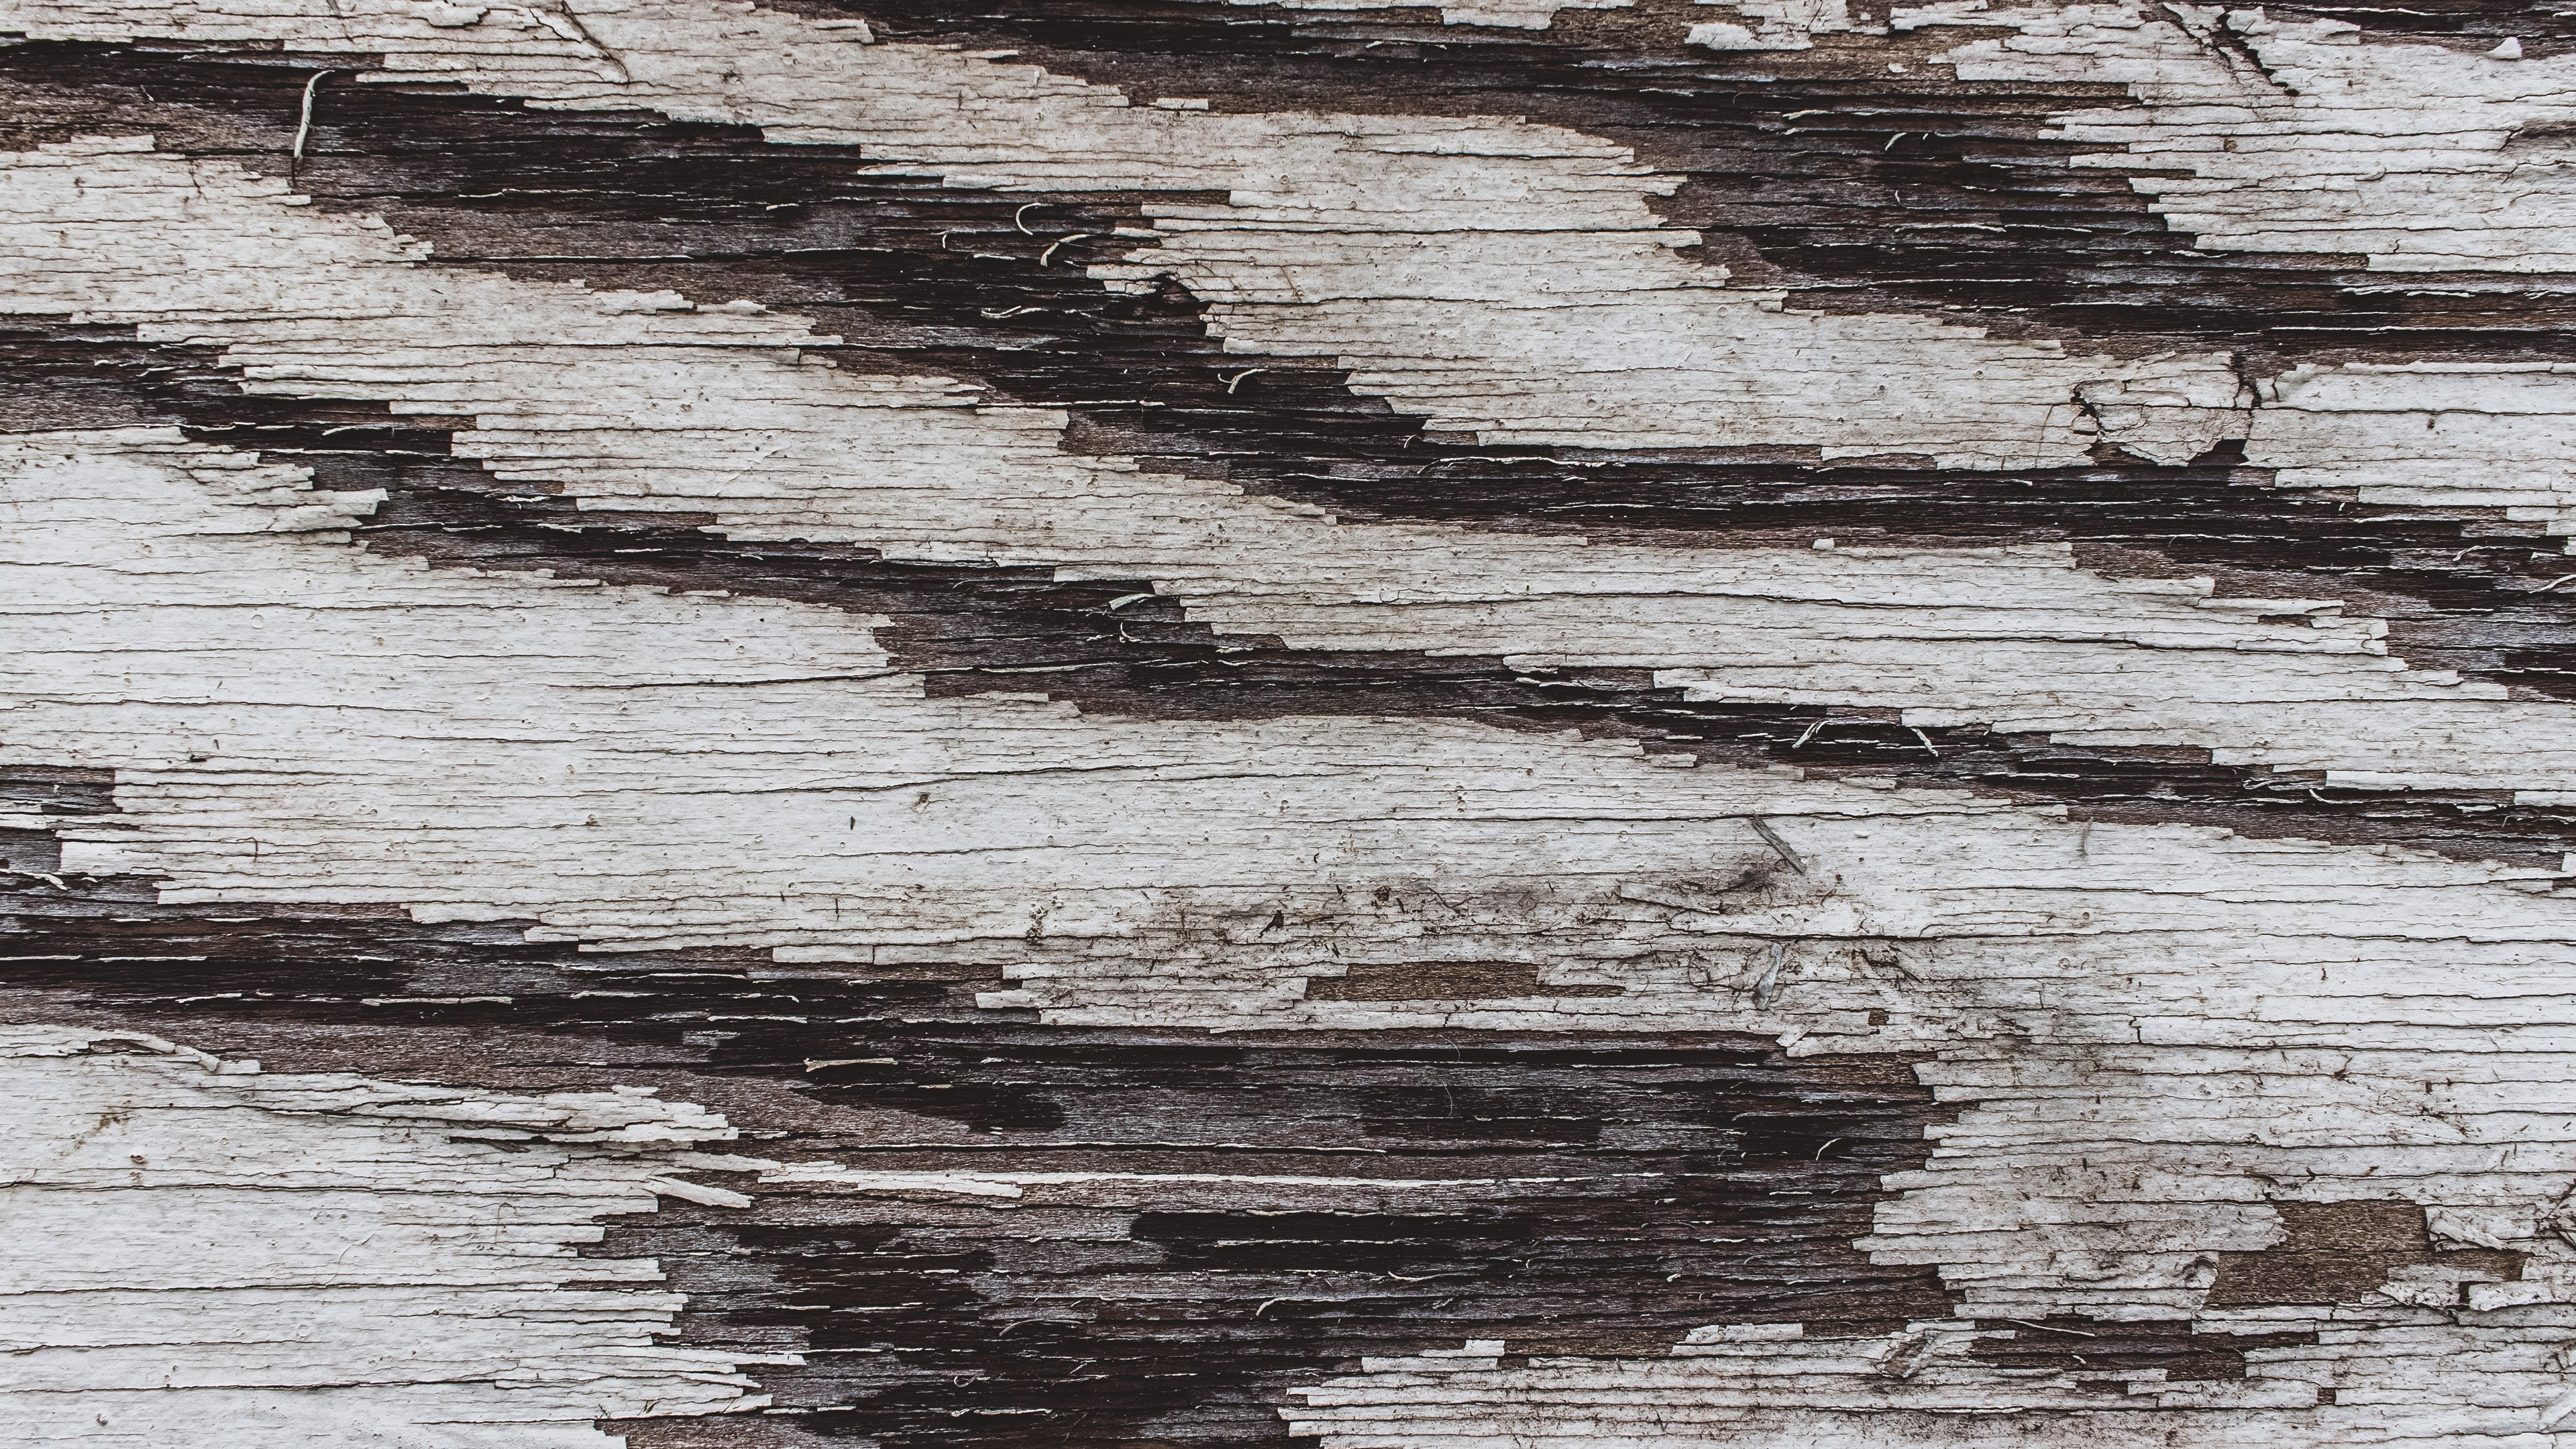 Wallpaper Wood Texture Background 3840x2160 Uhd 4k Picture